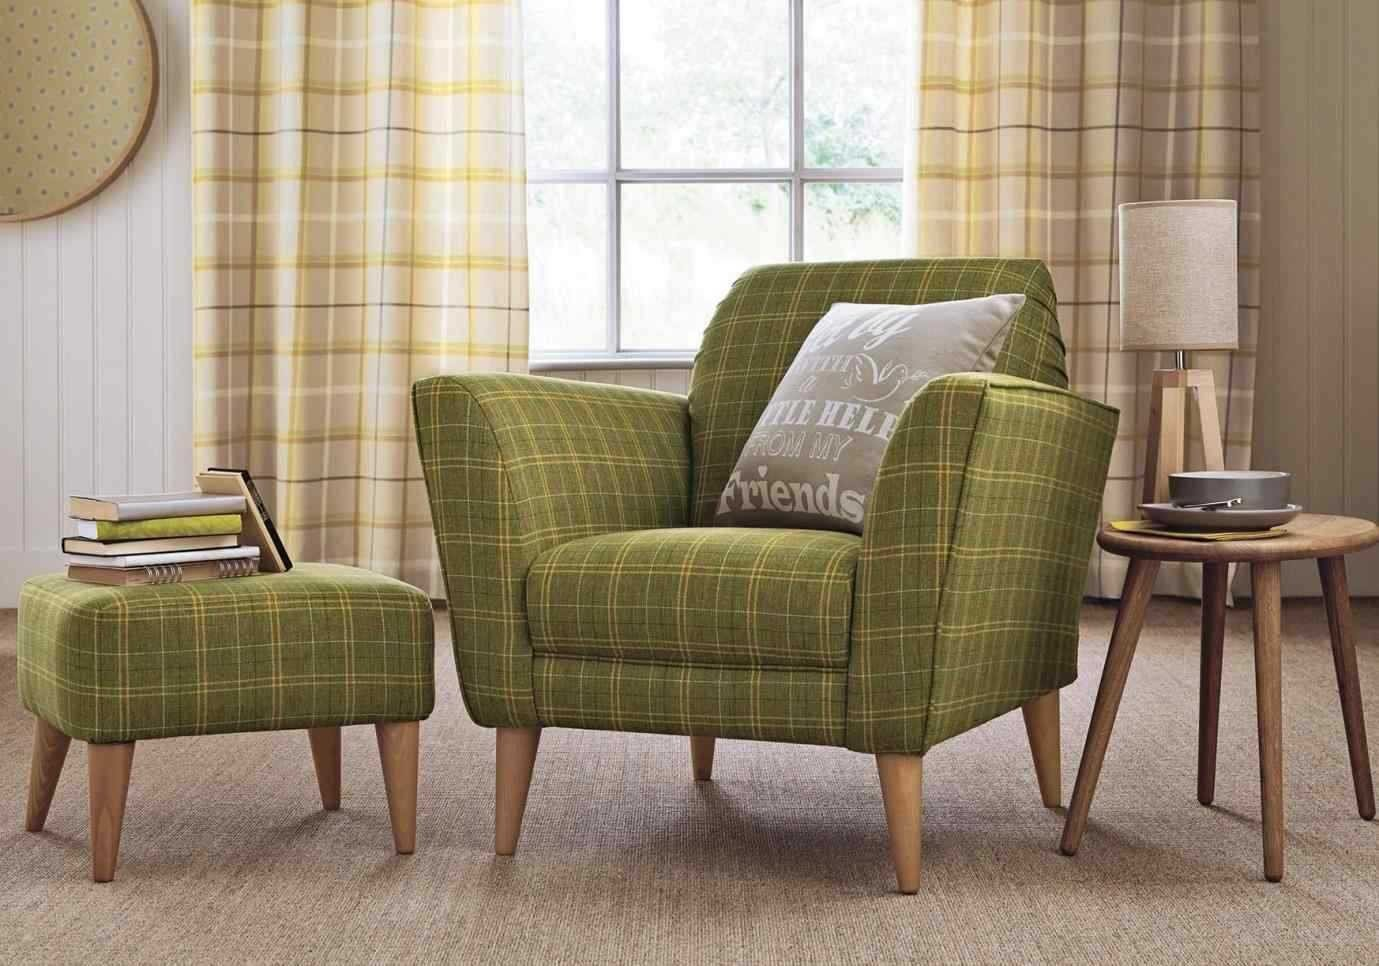 Most Comfortable Living Room Chair Awesome Most fortable Living Room Chair Inspirations and Most fortable Desk Chair